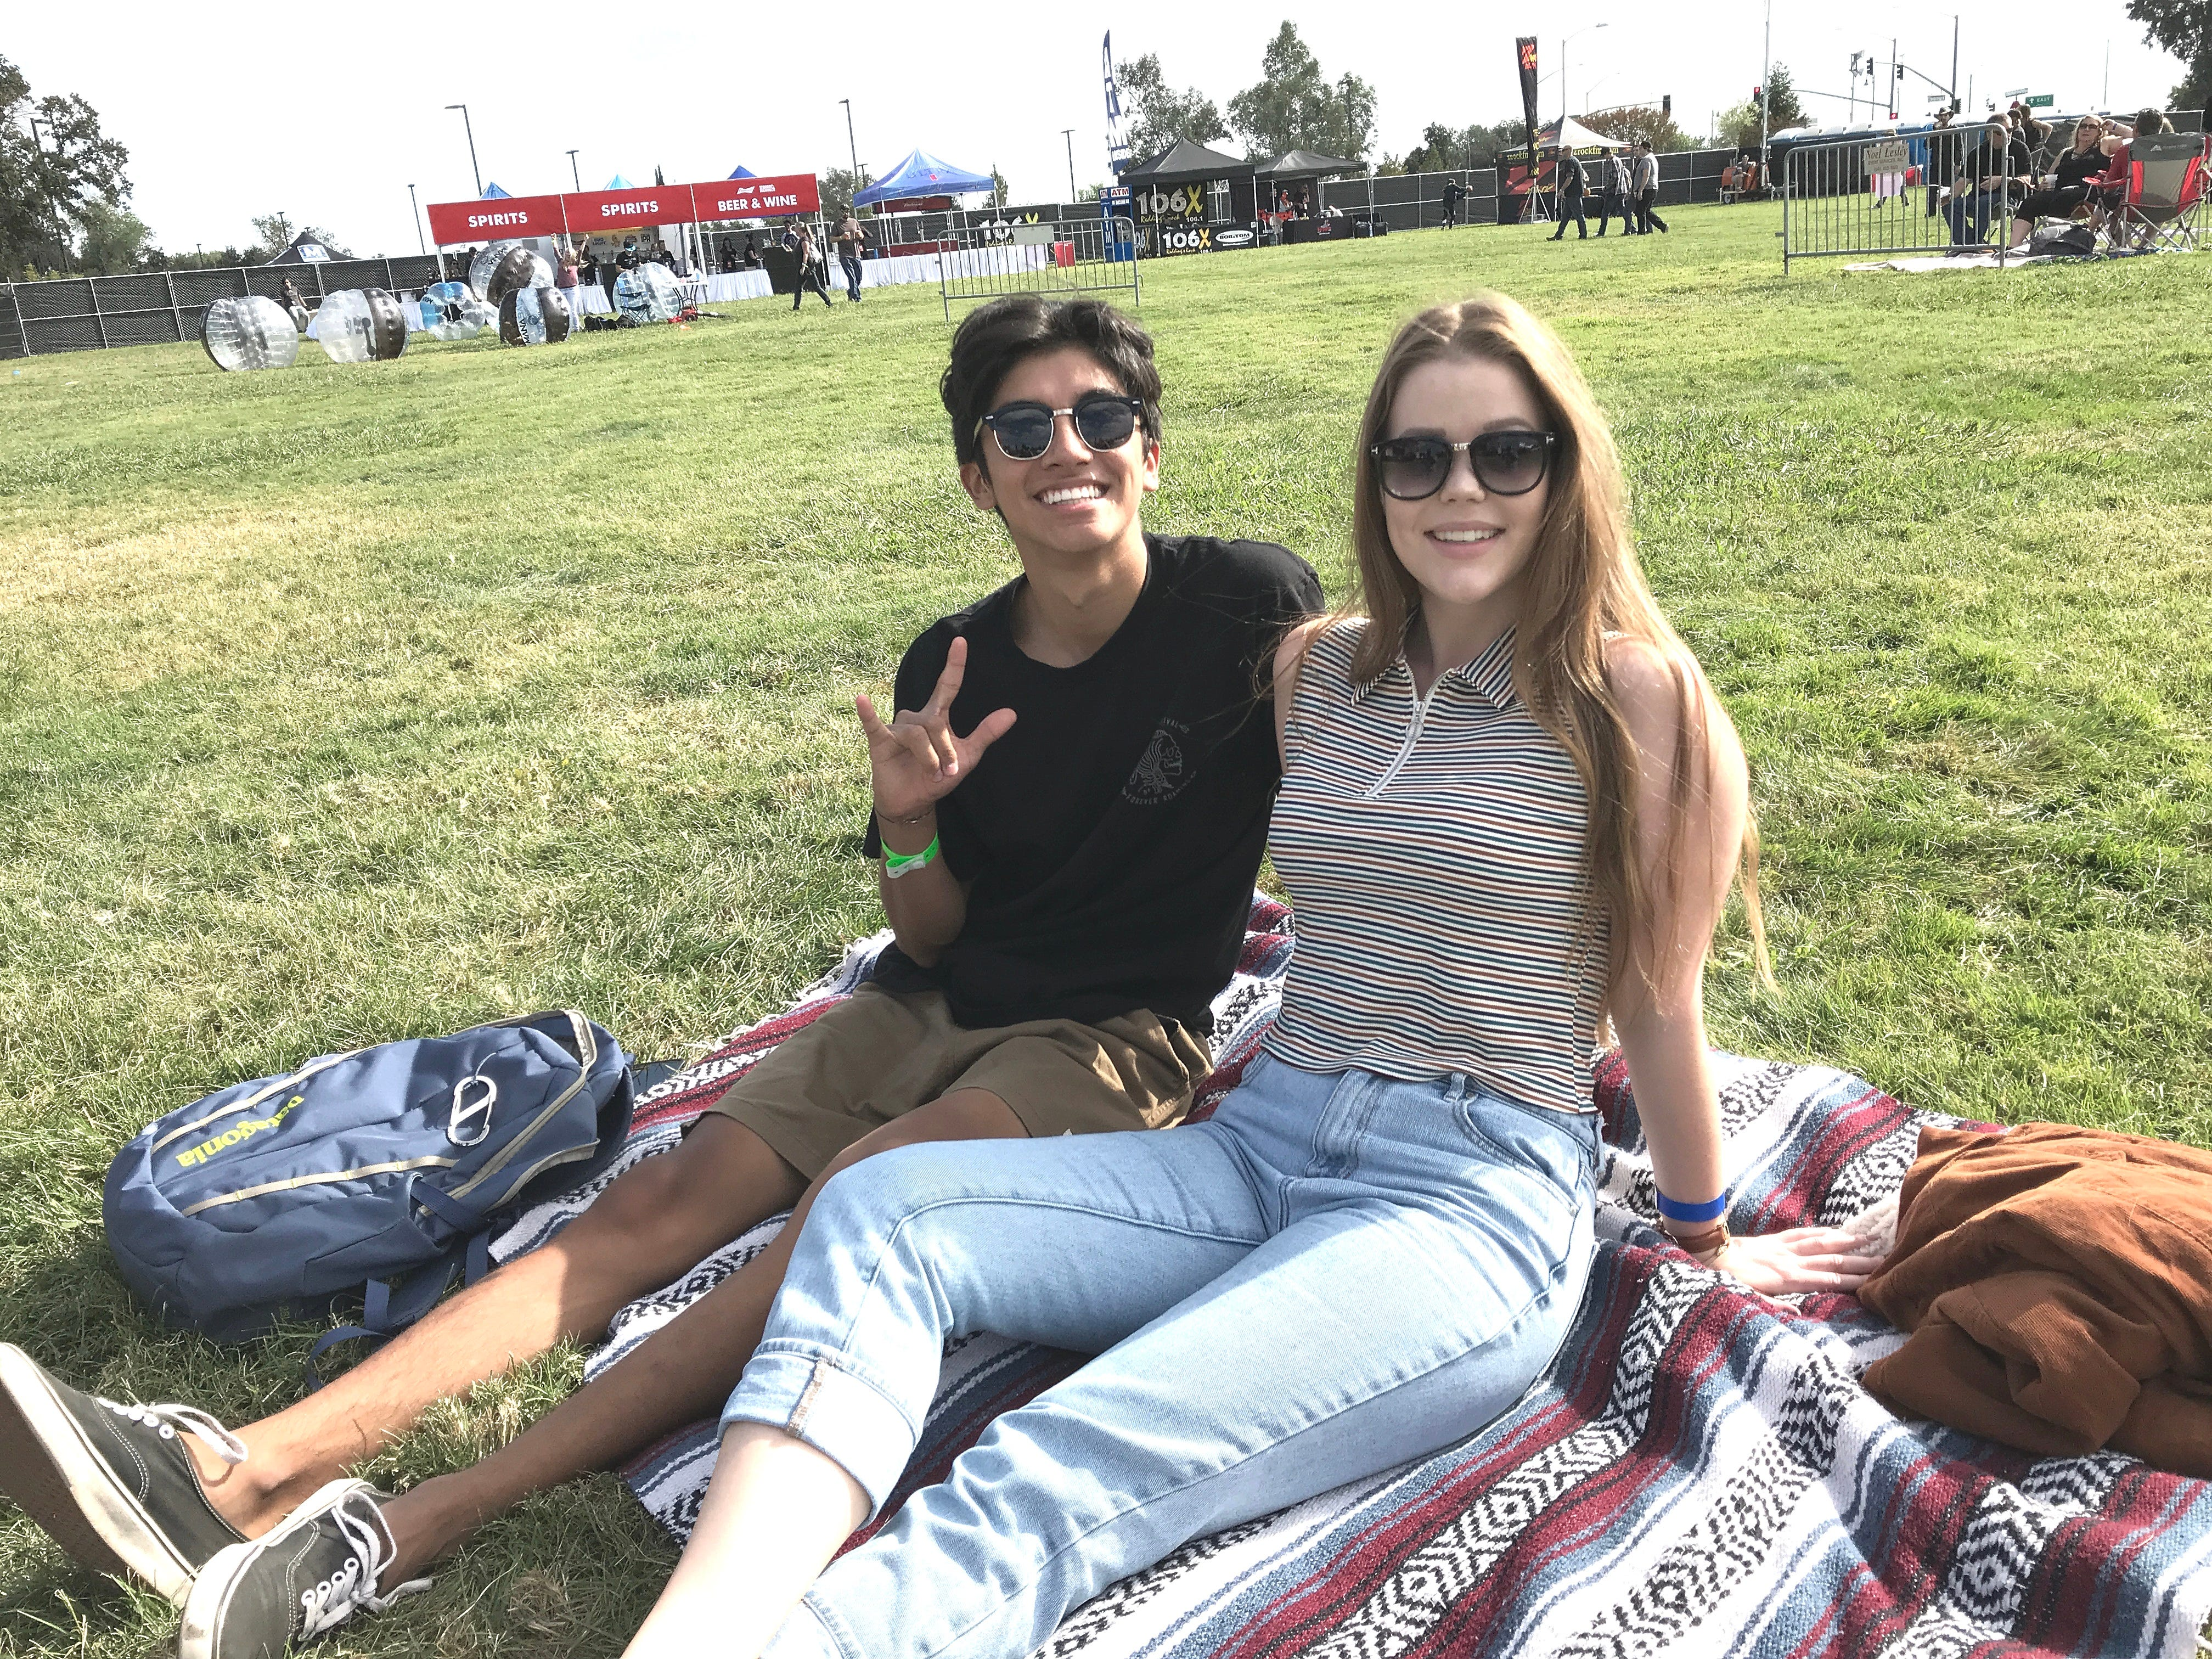 Awolnation fans Julian Christie, left, and Erin Caldwell sit on the Redding Civic Auditorium lawn Saturday afternoon before the start of the Redd Sun music festival.